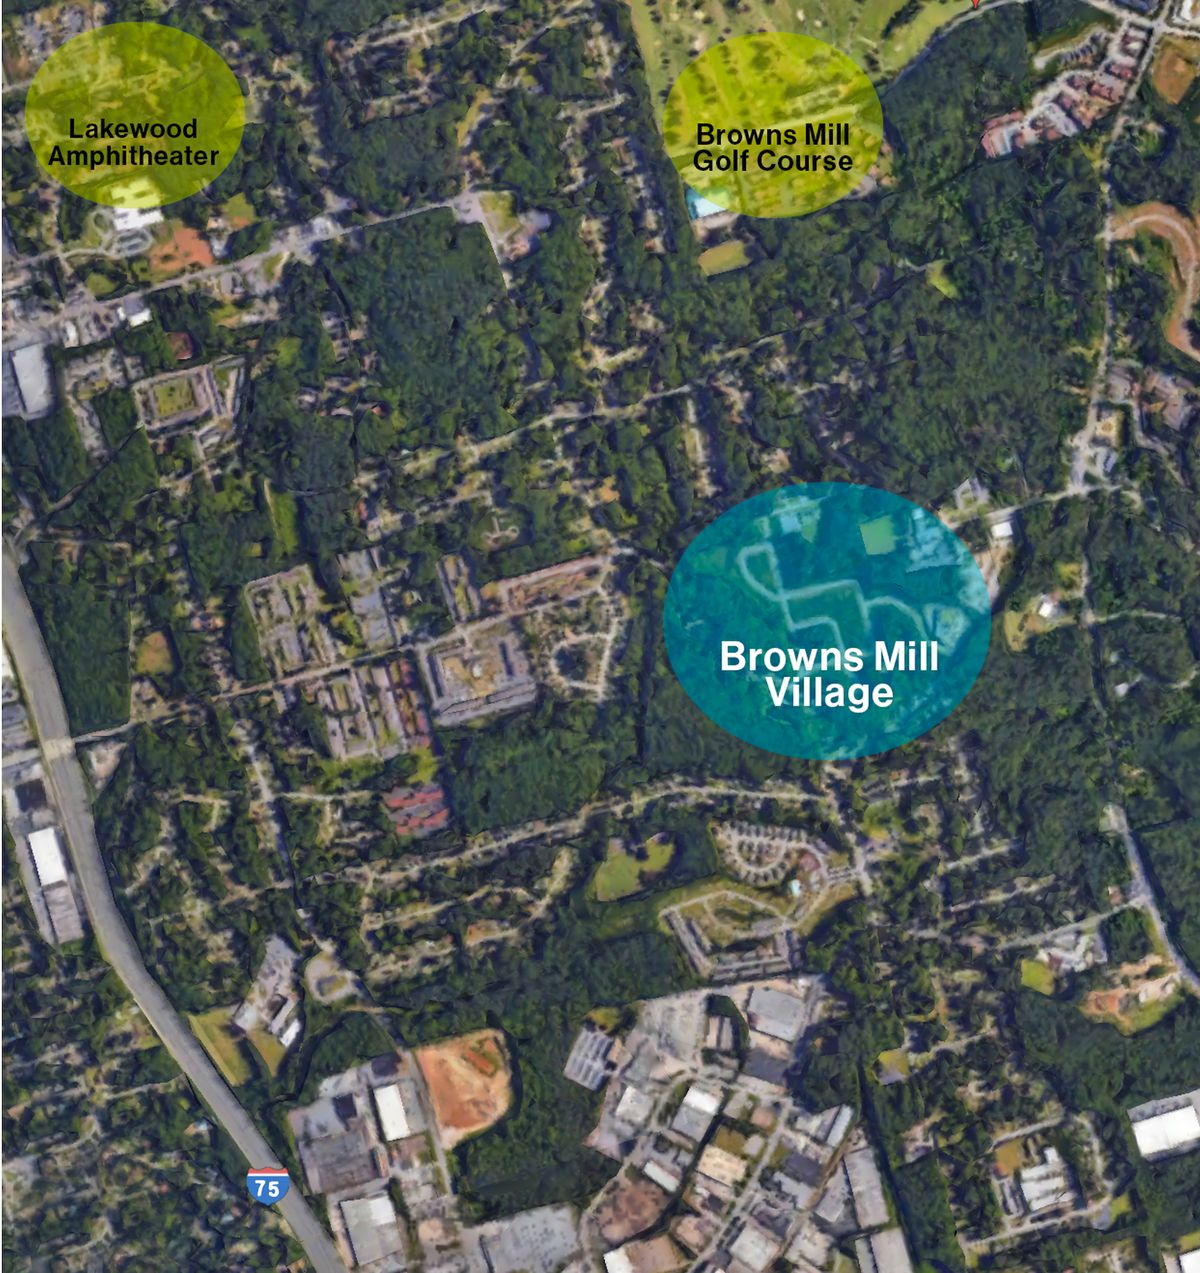 Aerial view of South Fulton showing the location of Browns Mill Village in relation to Lakewood amphitheater.